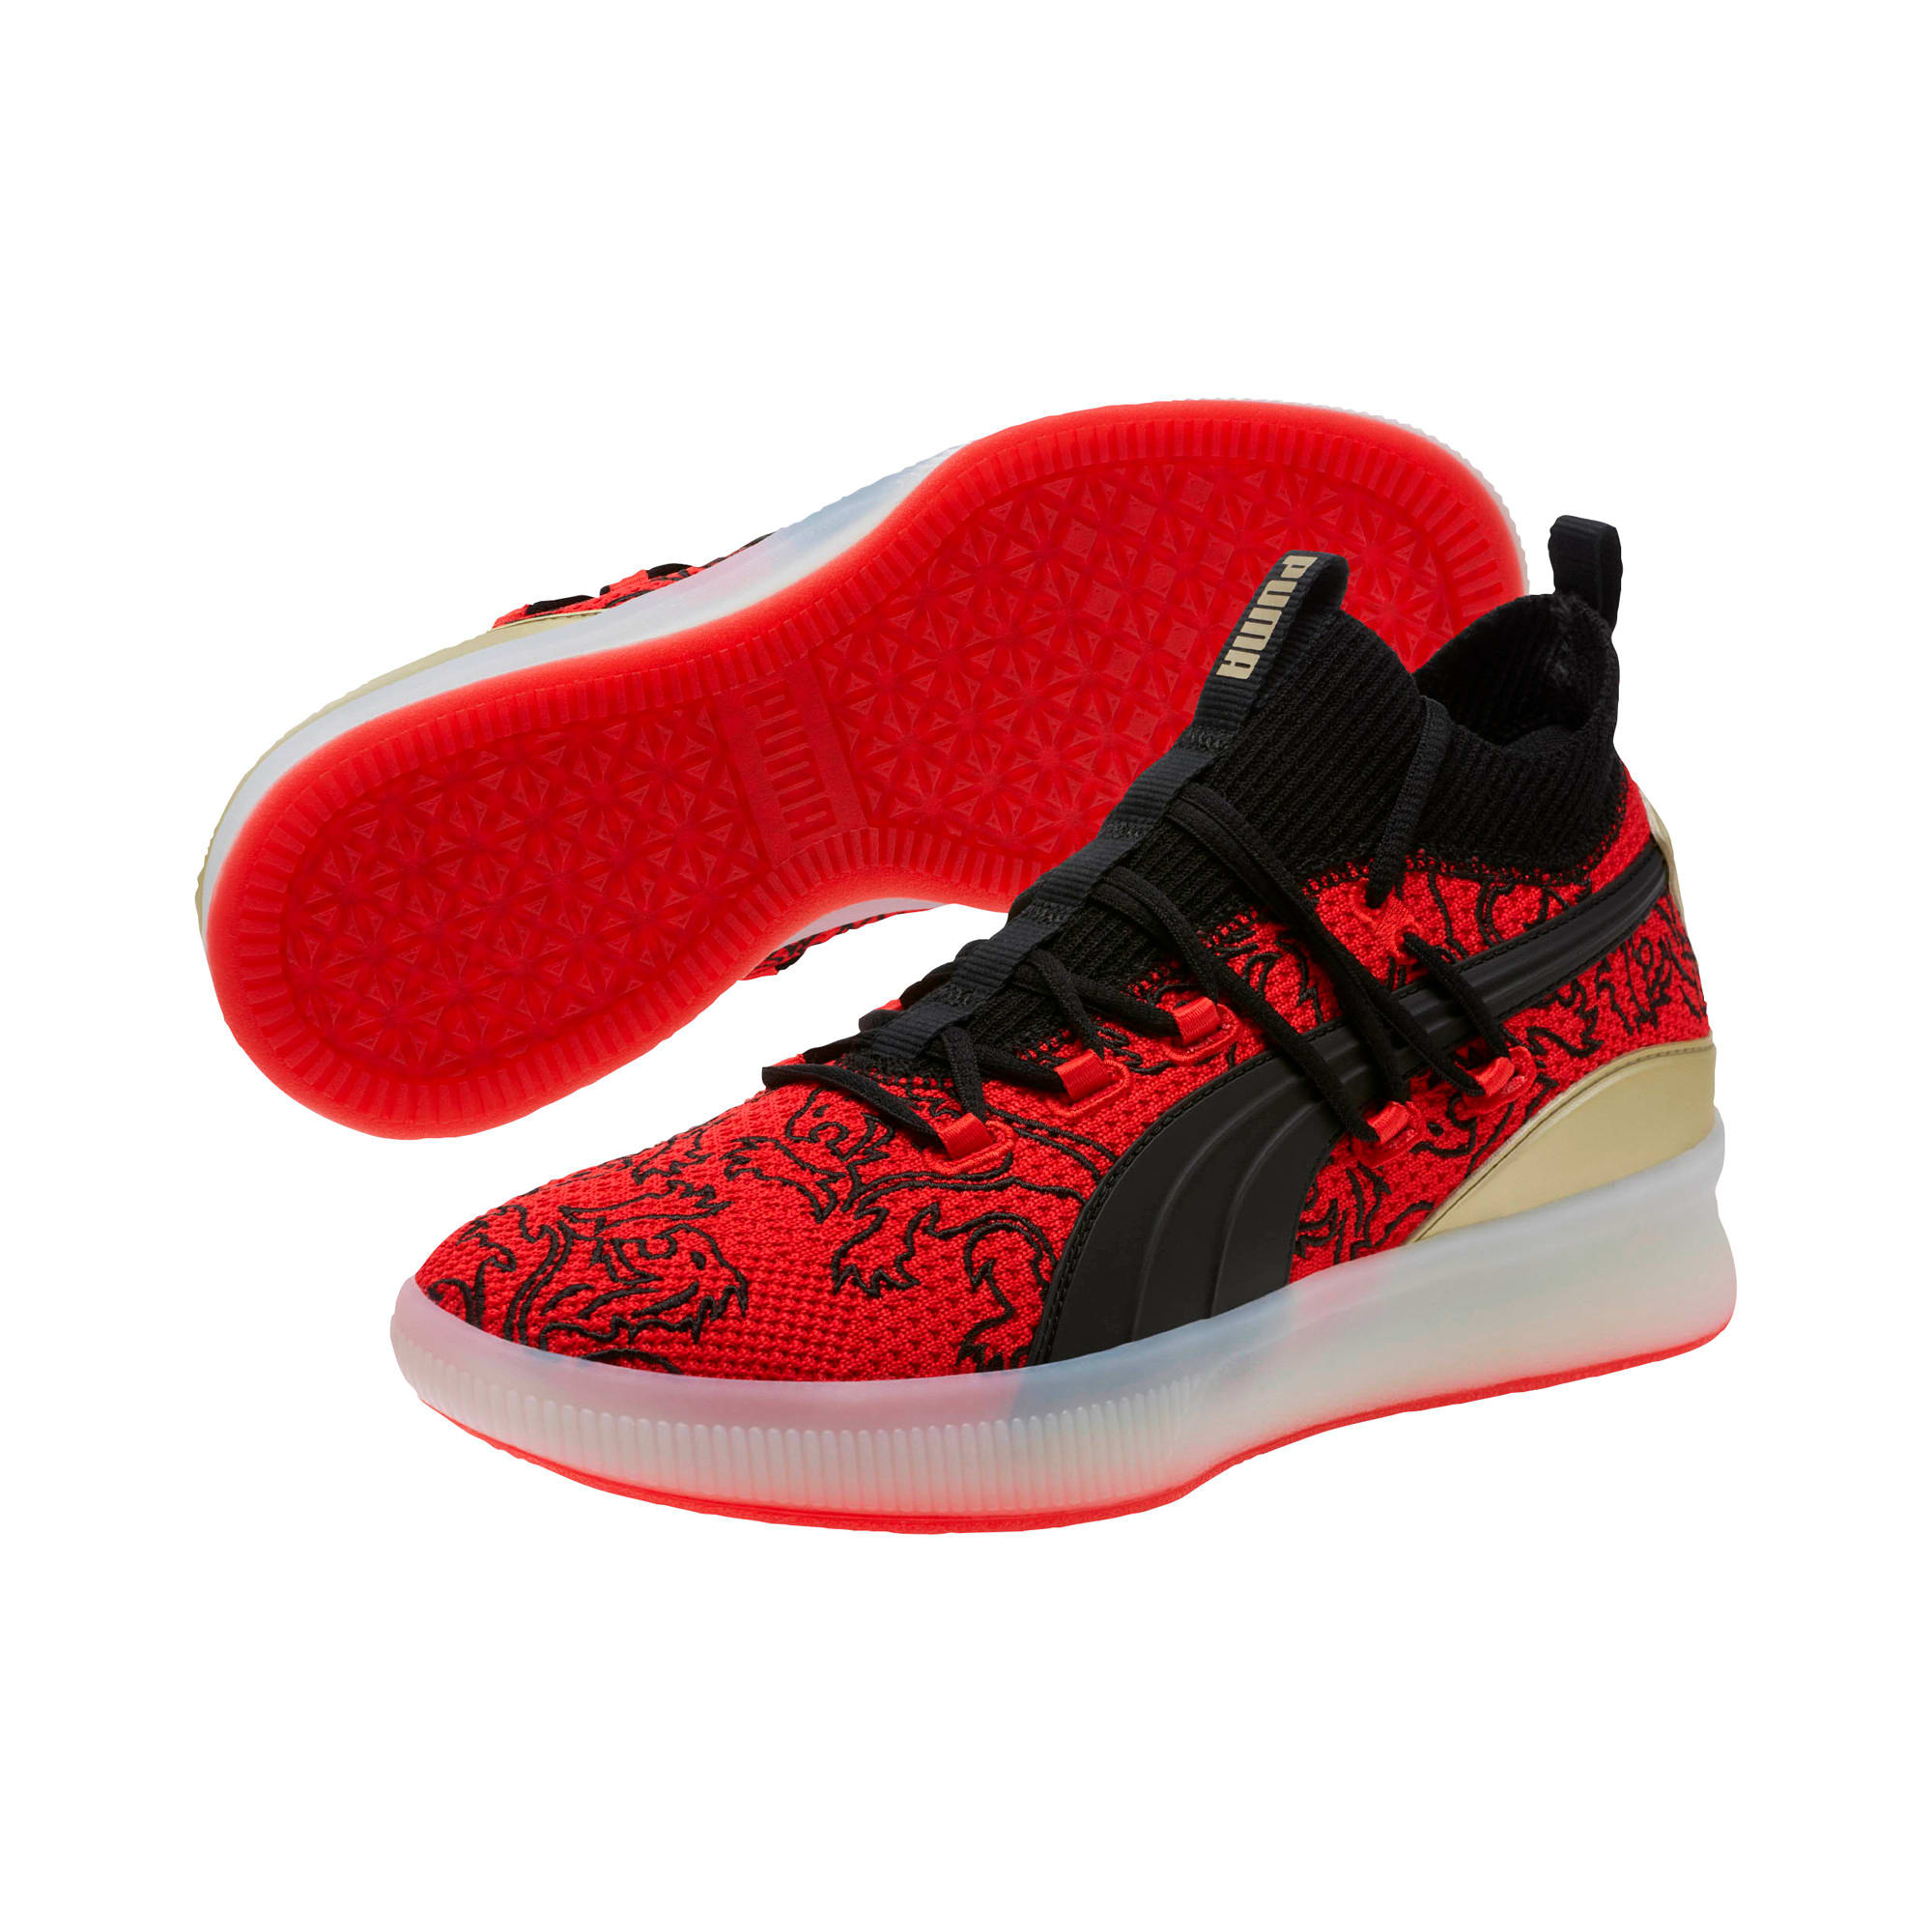 new photos 8cd73 45f78 Clyde Court London Men's Basketball Shoes